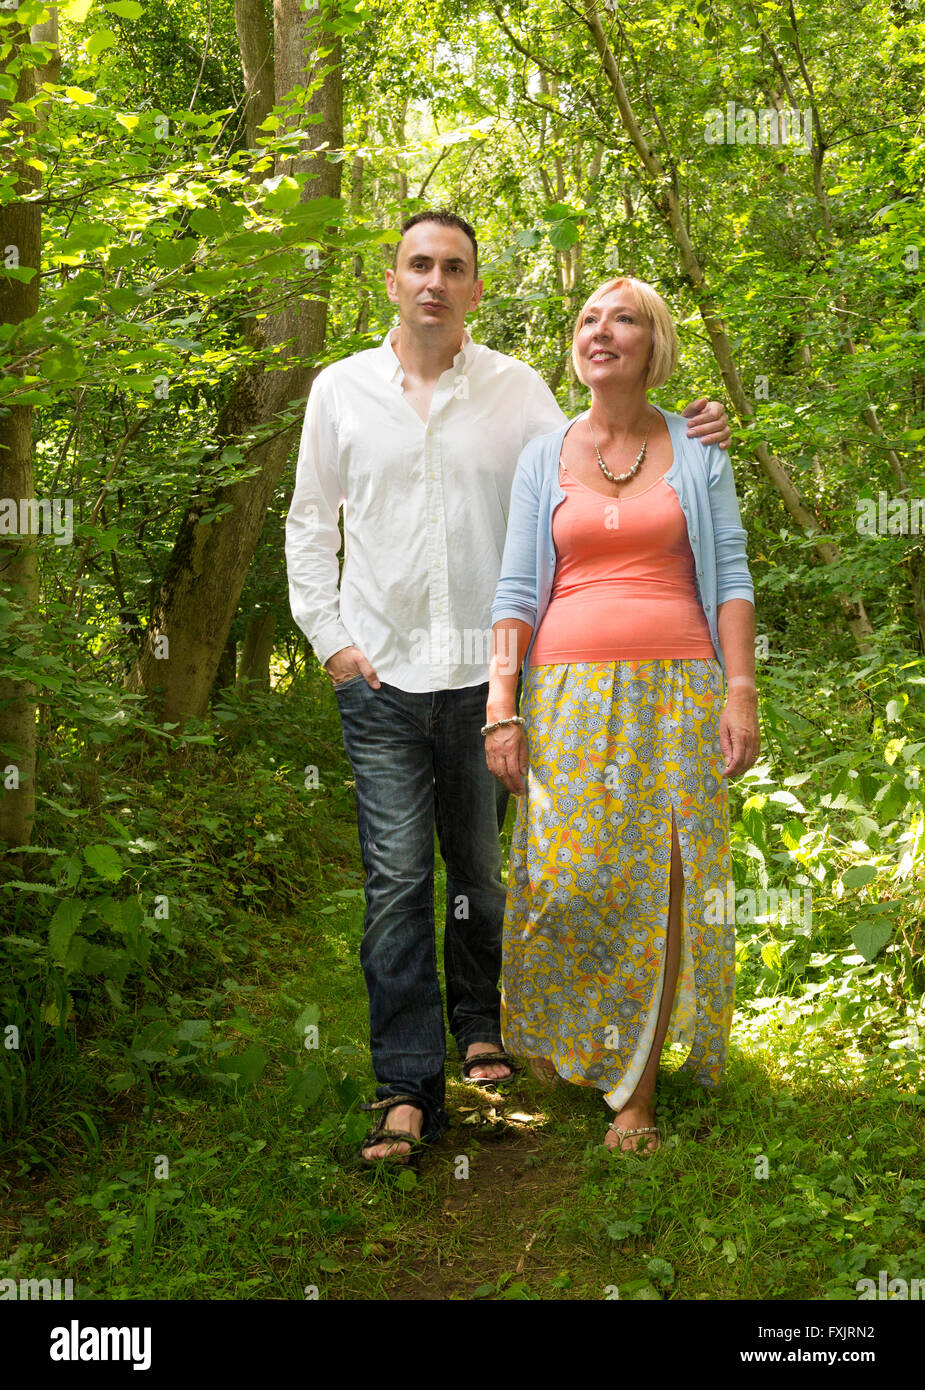 younger man with older woman - Stock Image